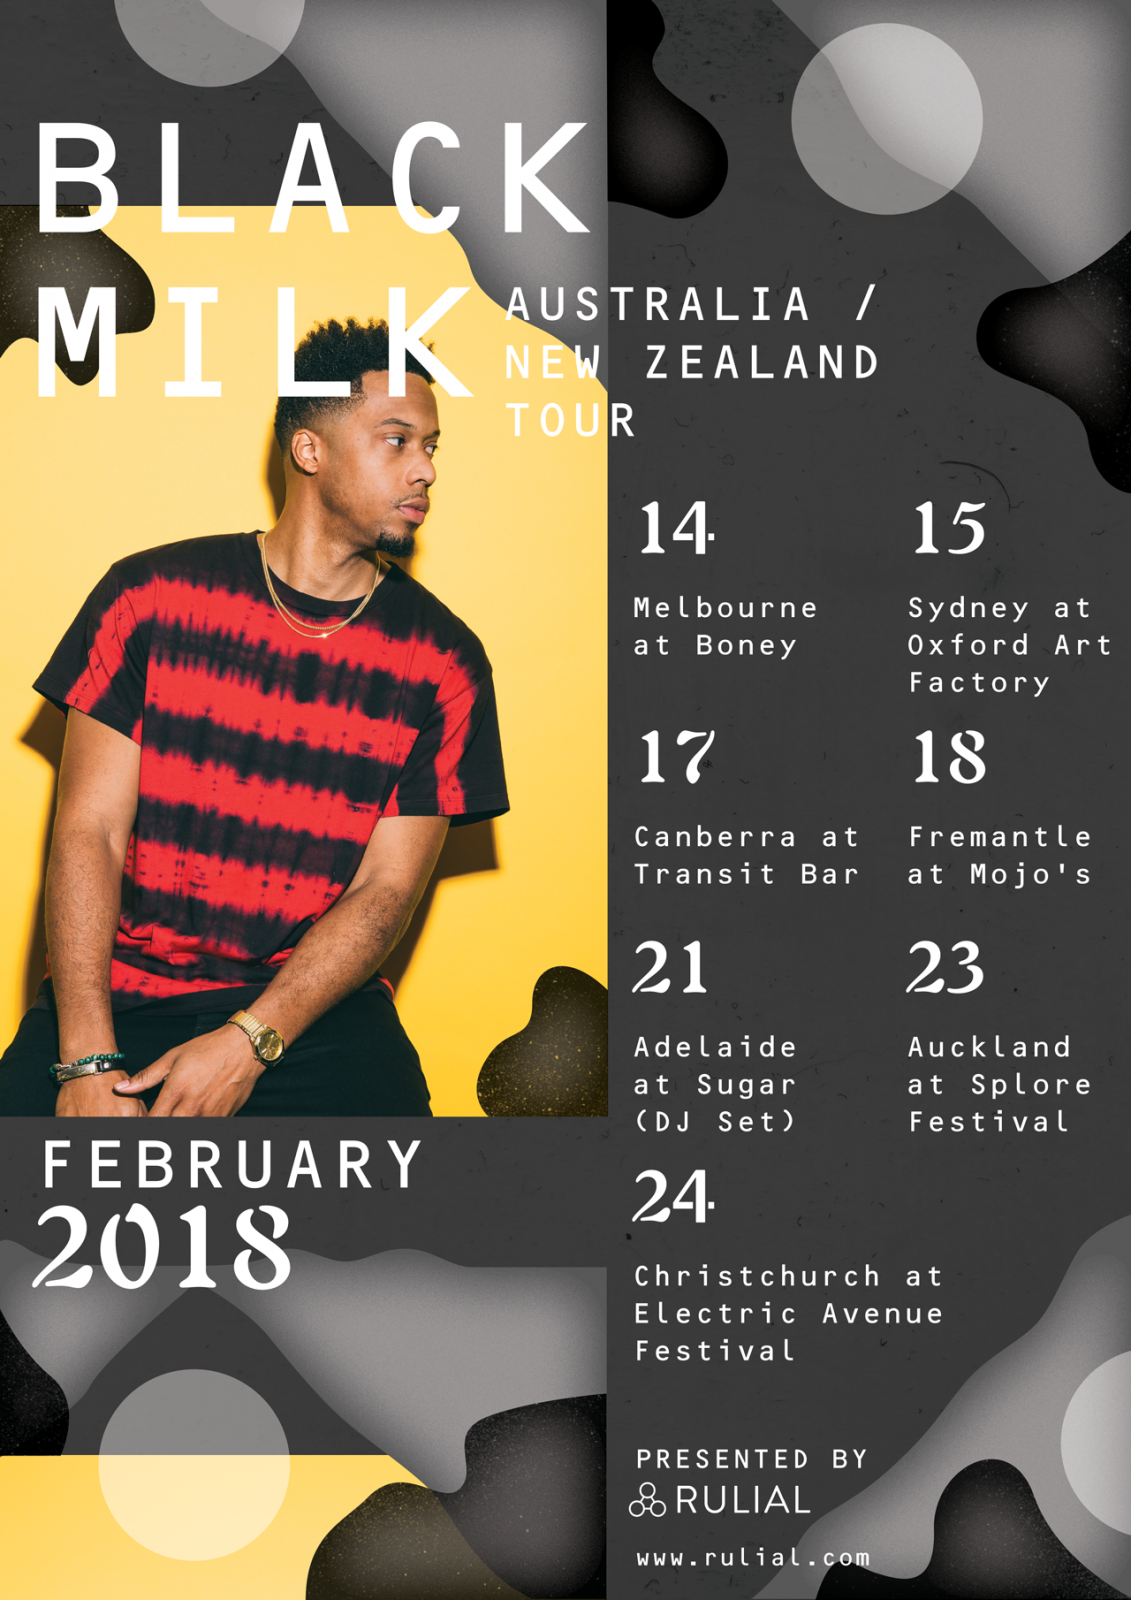 BLACK MILK AUSTRALIA & NEW ZEALAND TOUR